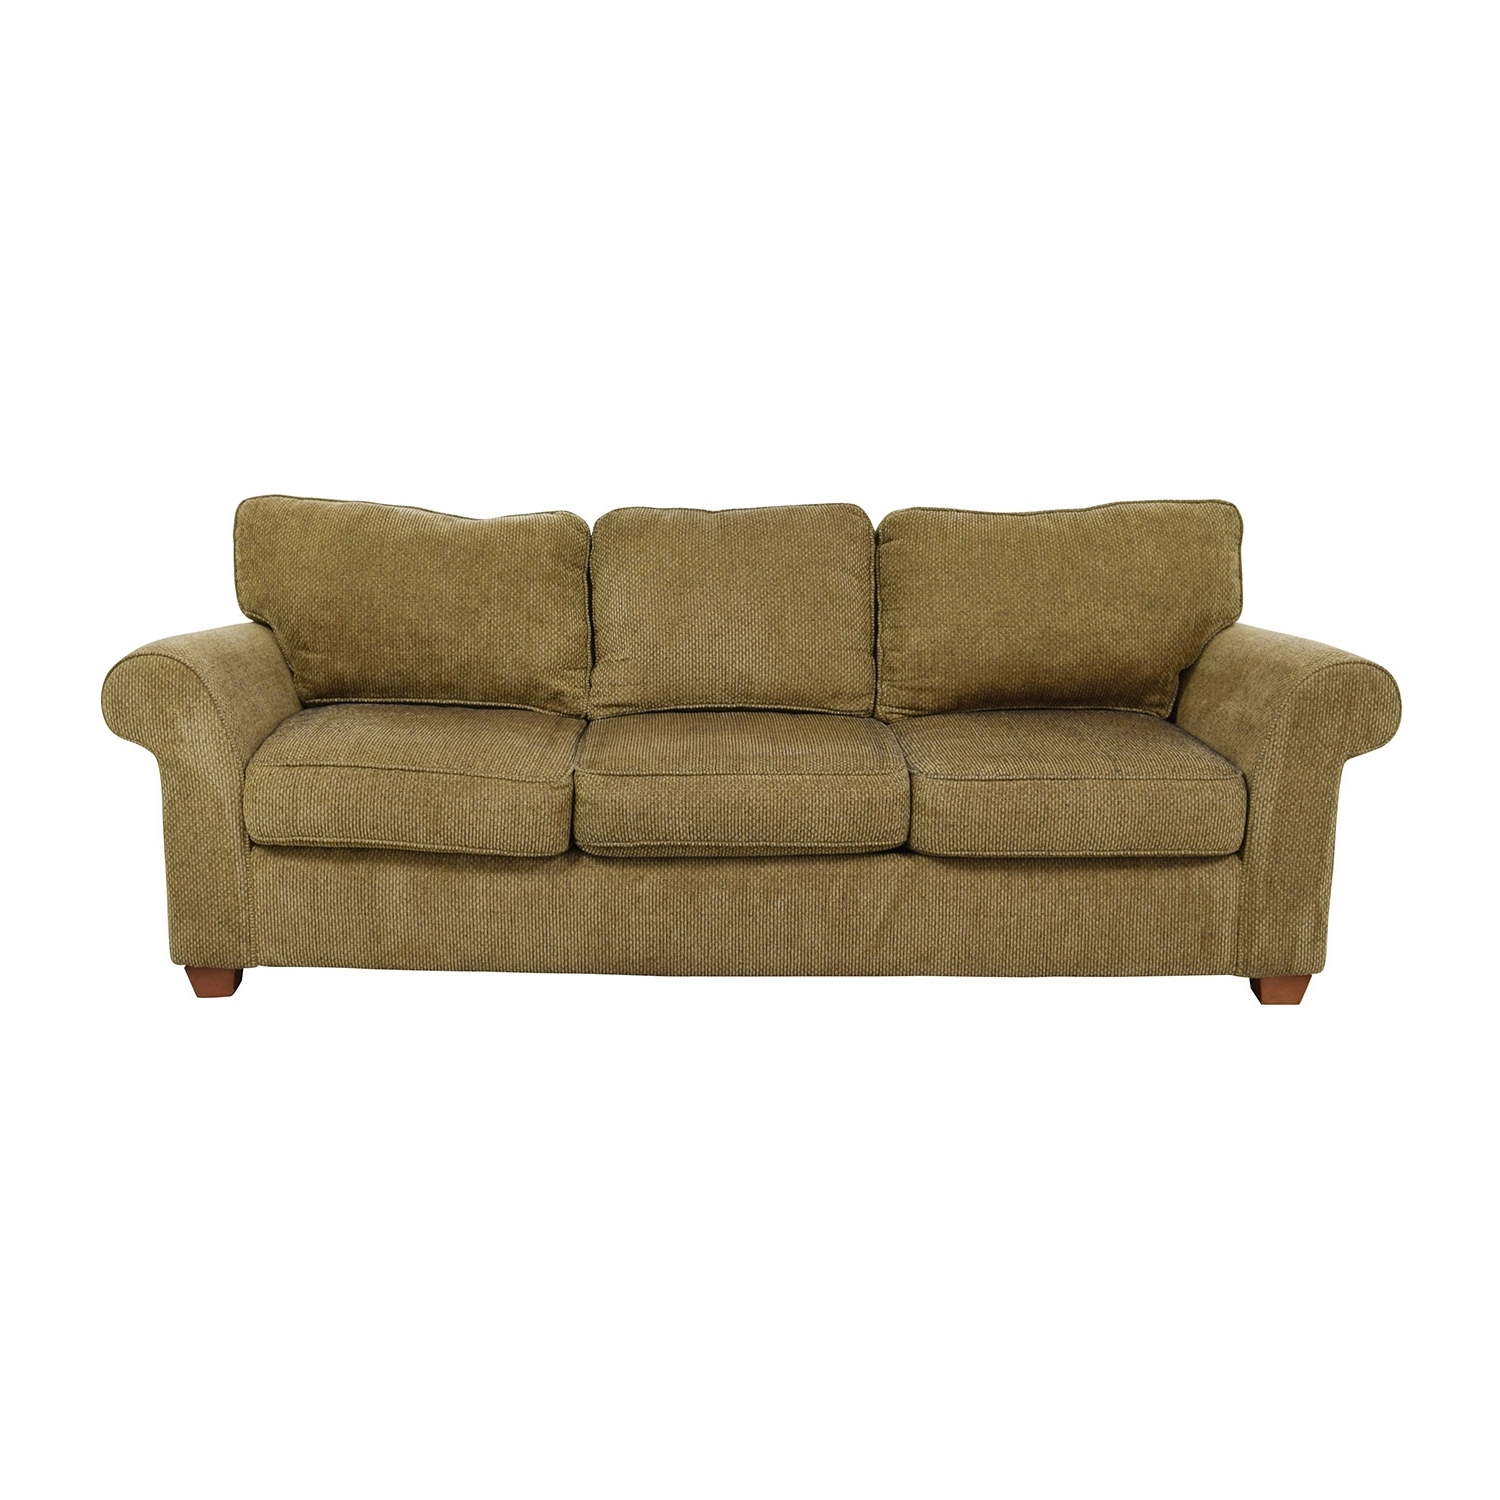 [%90% Off – Bloomingdale's Bloomingdale's Beige Tweed Fabric Sofa With Regard To Most Popular Tweed Fabric Sofas|Tweed Fabric Sofas With Regard To Popular 90% Off – Bloomingdale's Bloomingdale's Beige Tweed Fabric Sofa|Well Known Tweed Fabric Sofas Pertaining To 90% Off – Bloomingdale's Bloomingdale's Beige Tweed Fabric Sofa|Fashionable 90% Off – Bloomingdale's Bloomingdale's Beige Tweed Fabric Sofa Within Tweed Fabric Sofas%] (View 3 of 15)